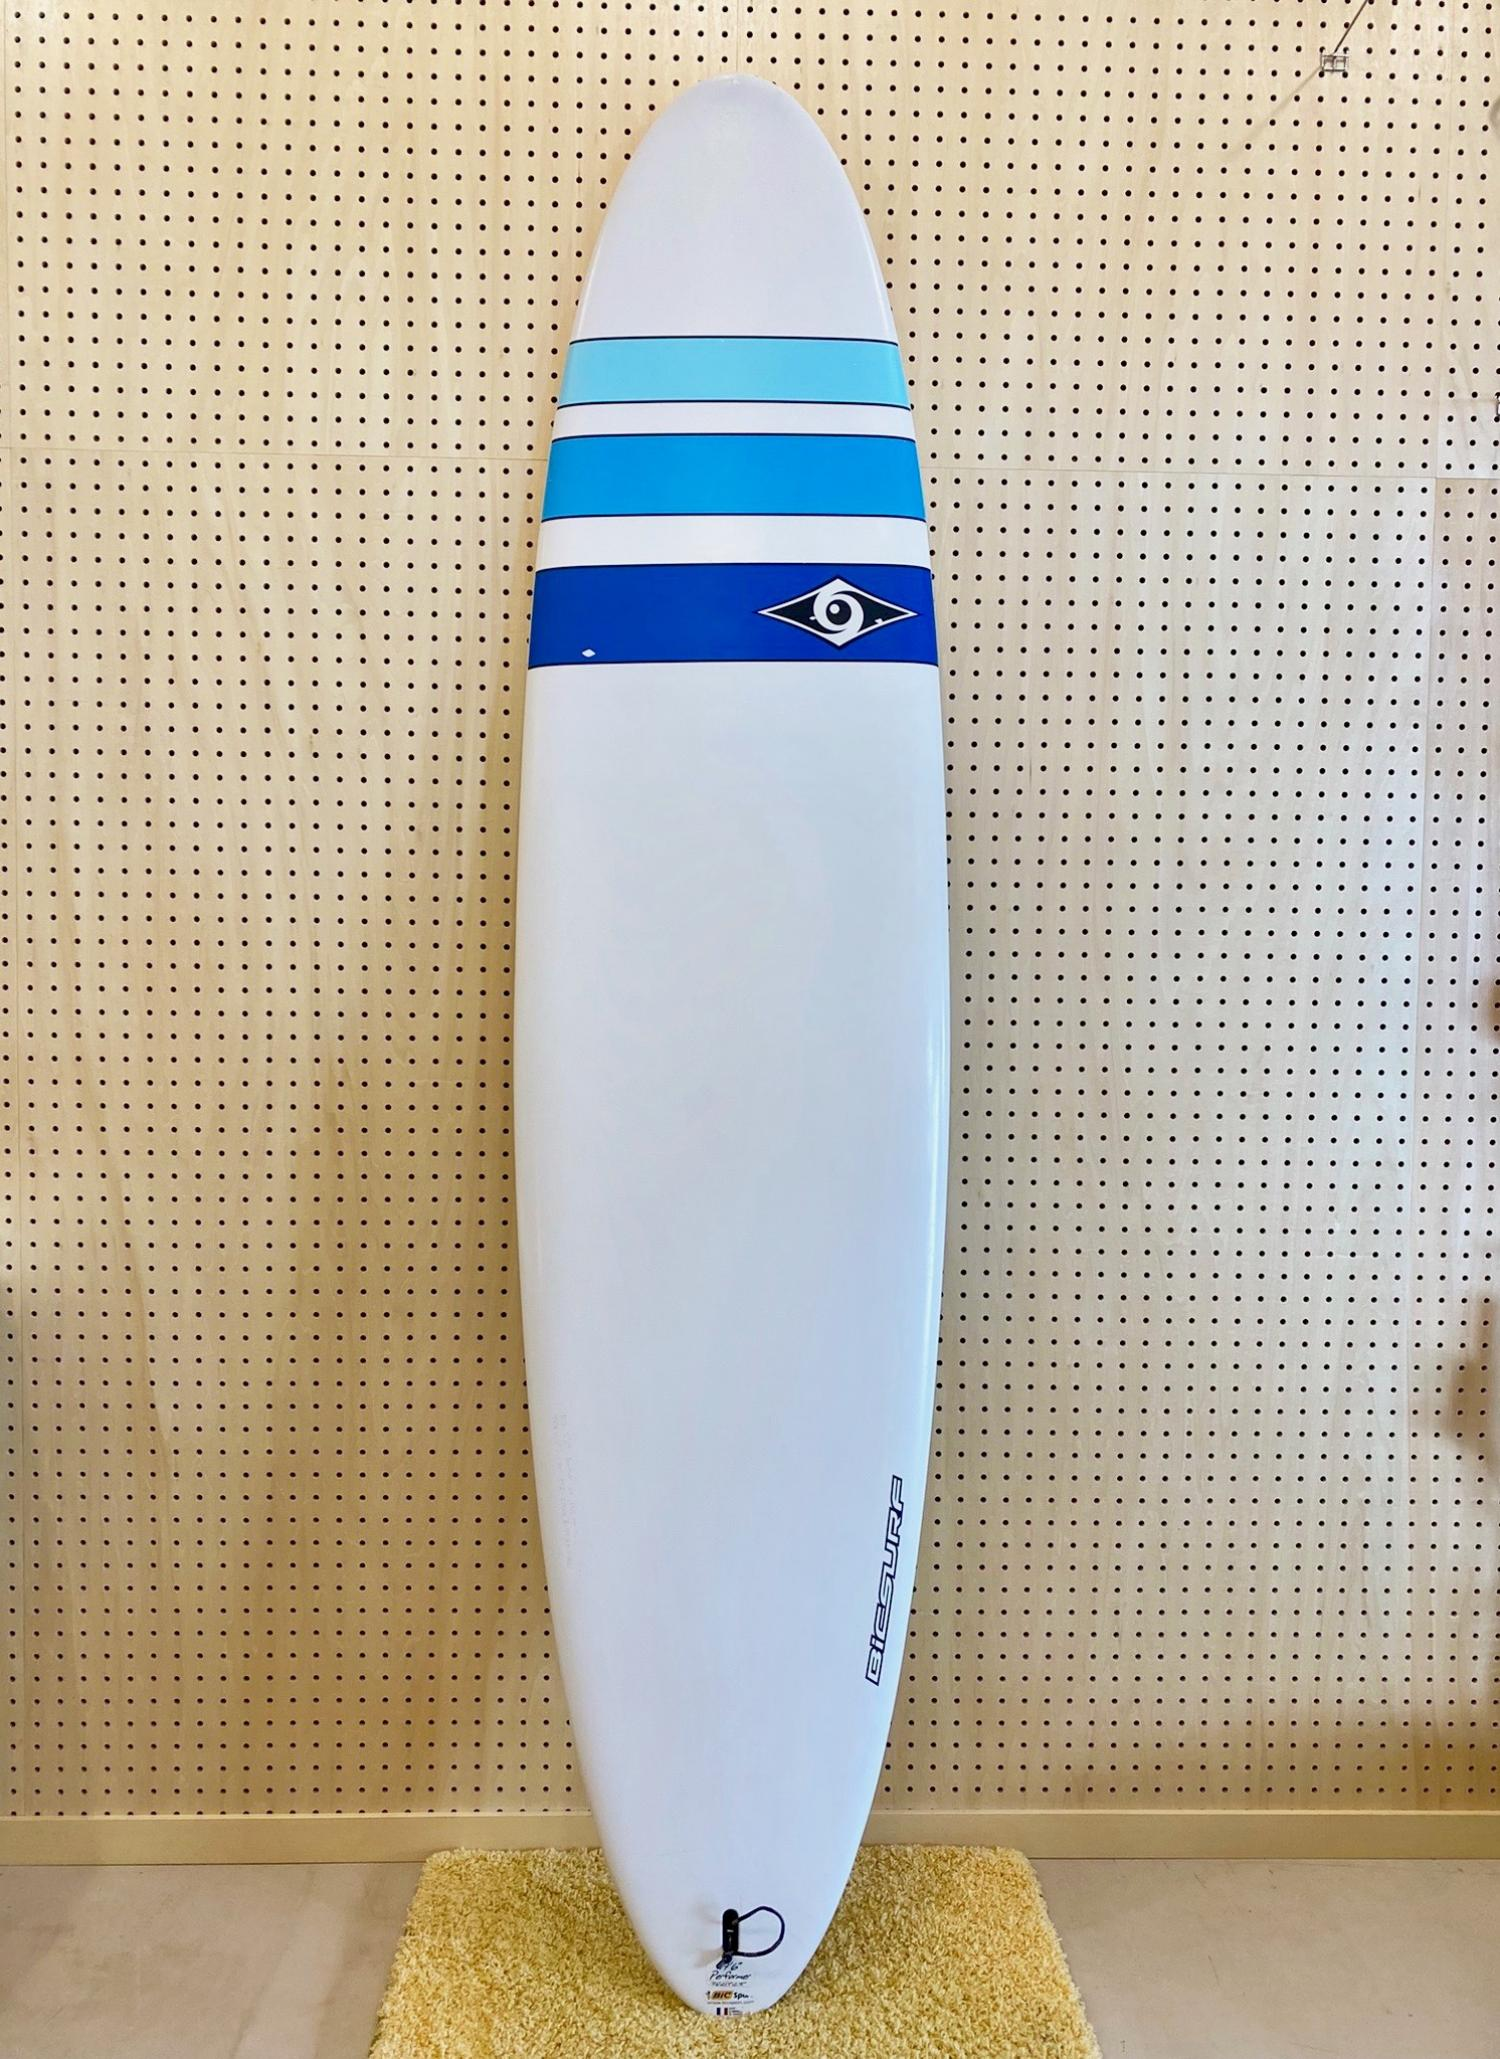 BIC SURF BOARDS 7.6 ACE TEC Performer